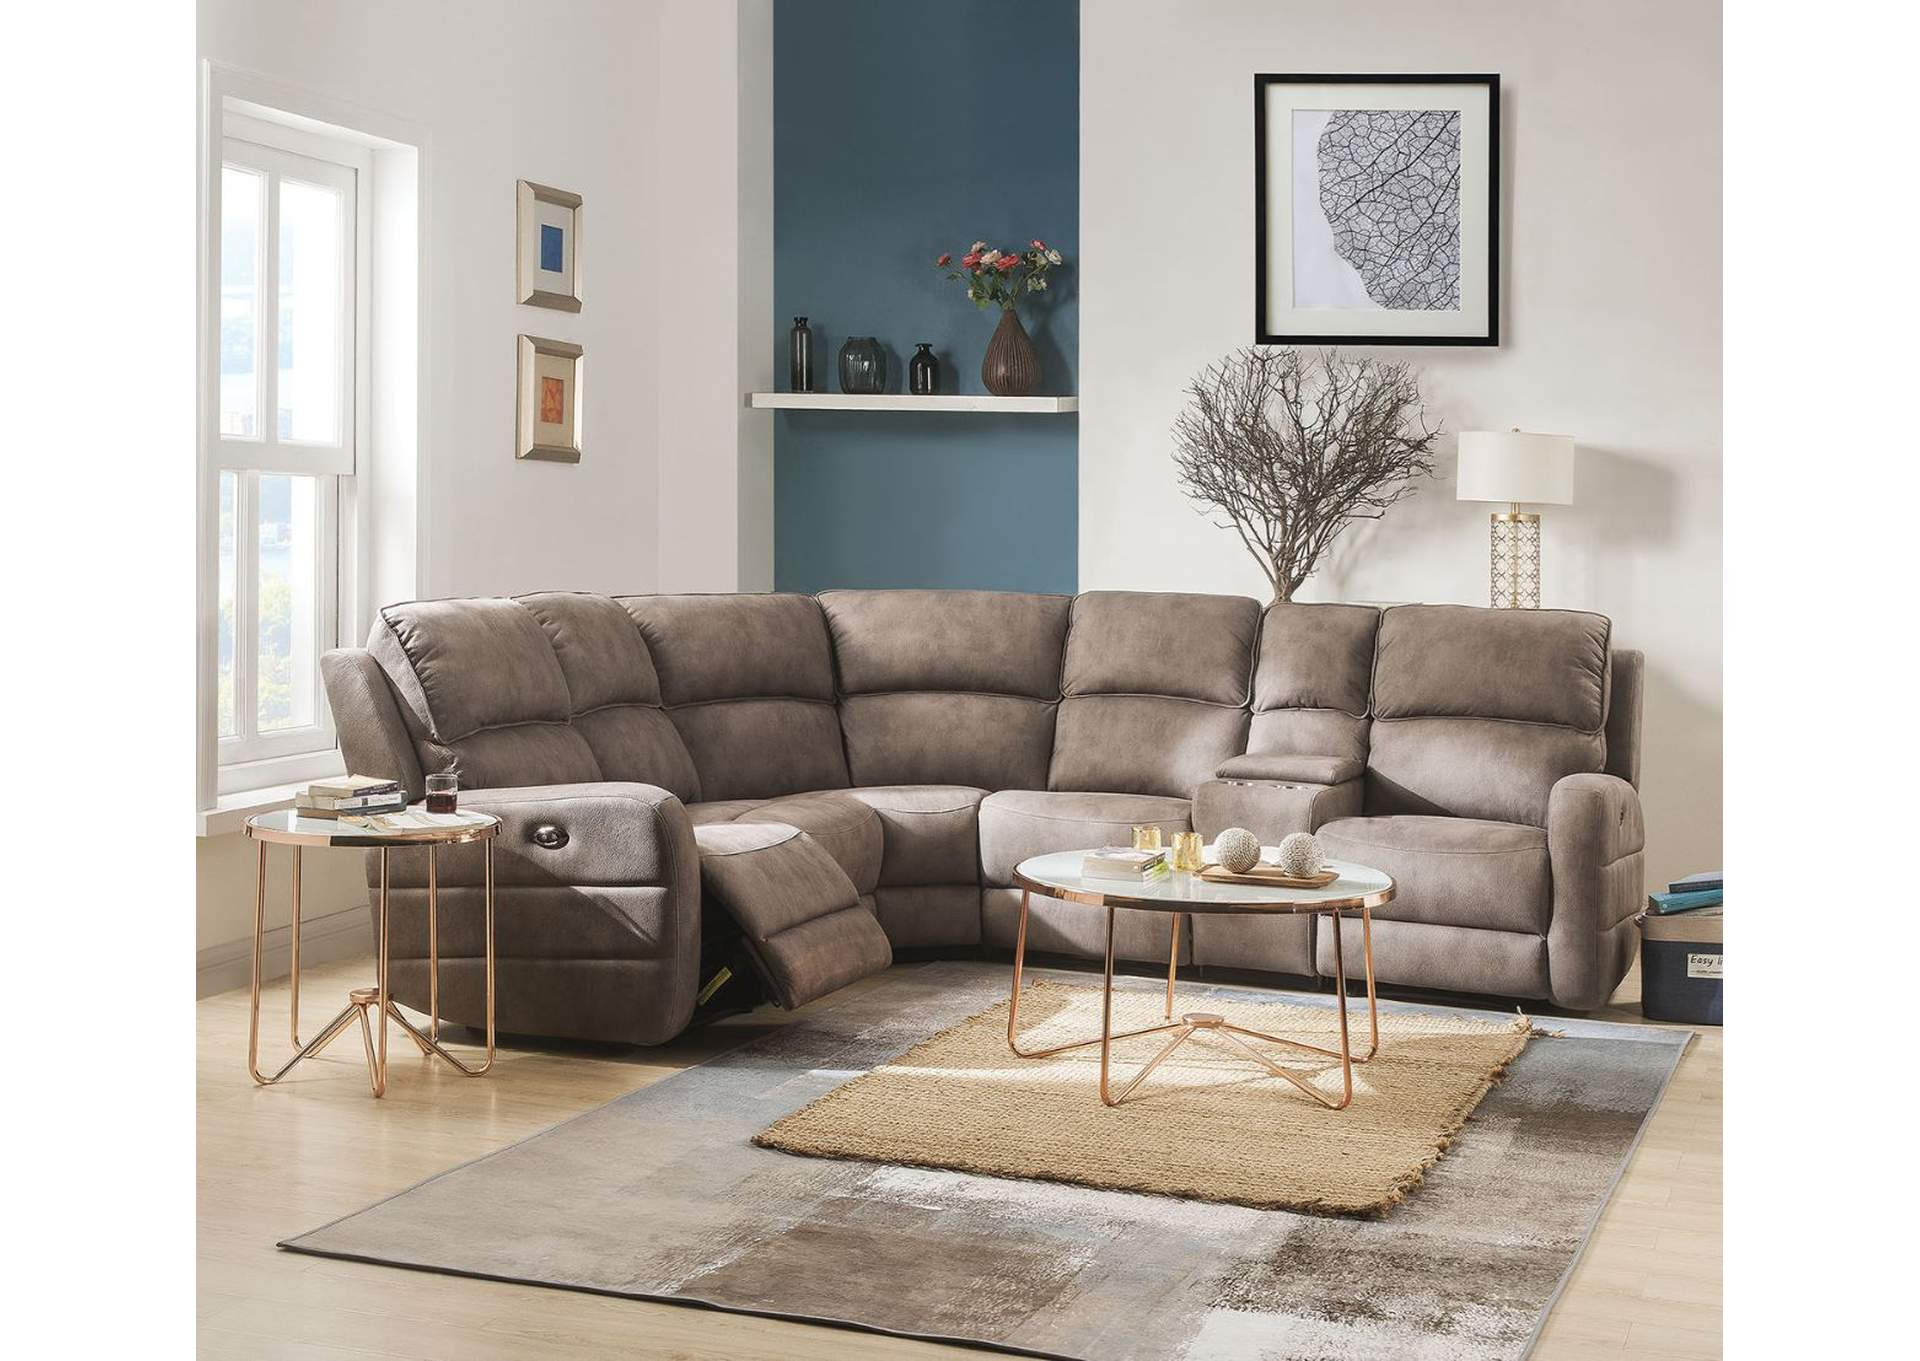 Olwen Mocha Nubuck Sectional Sofa,Acme